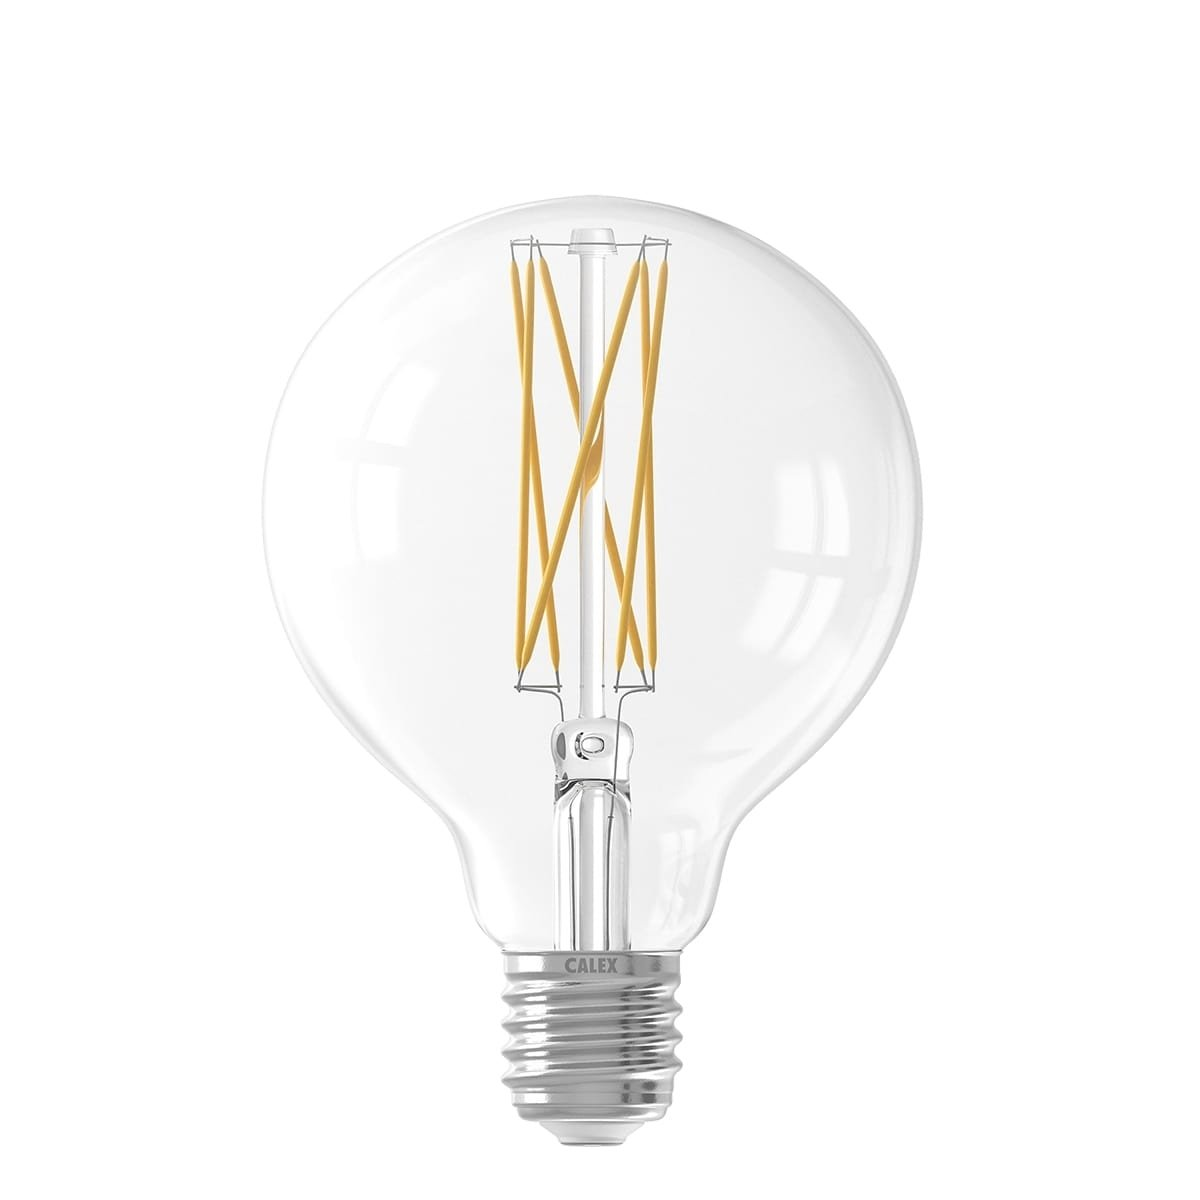 Outdoor Lighting Light Sources Led light source filament Globe Bright - 4W